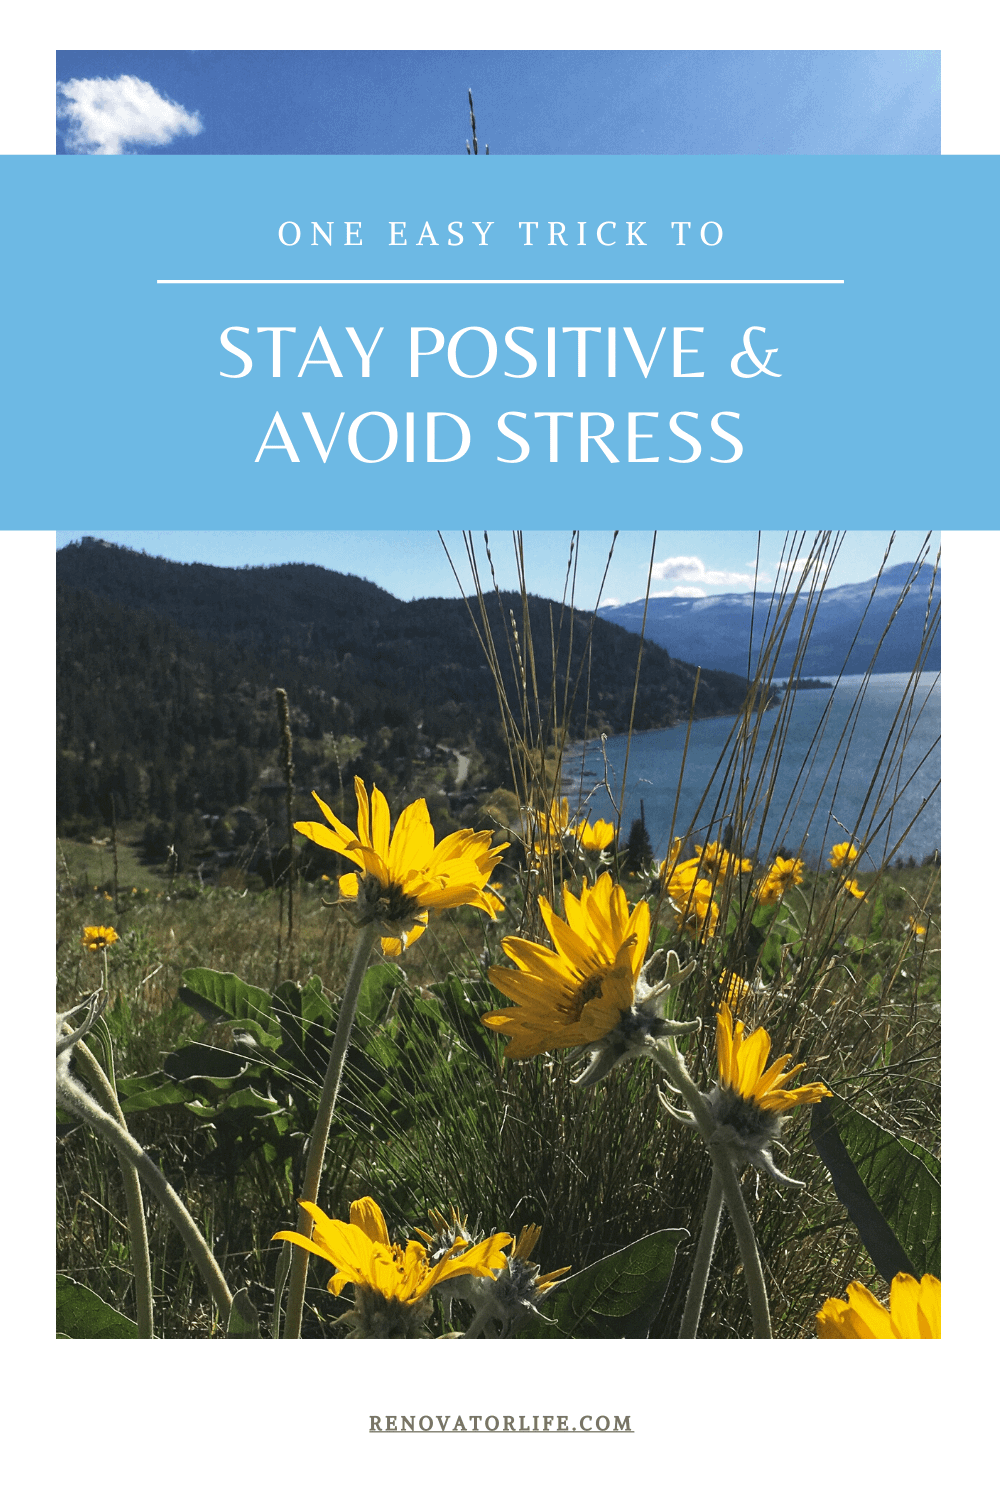 Stay Positive and Avoid Stress